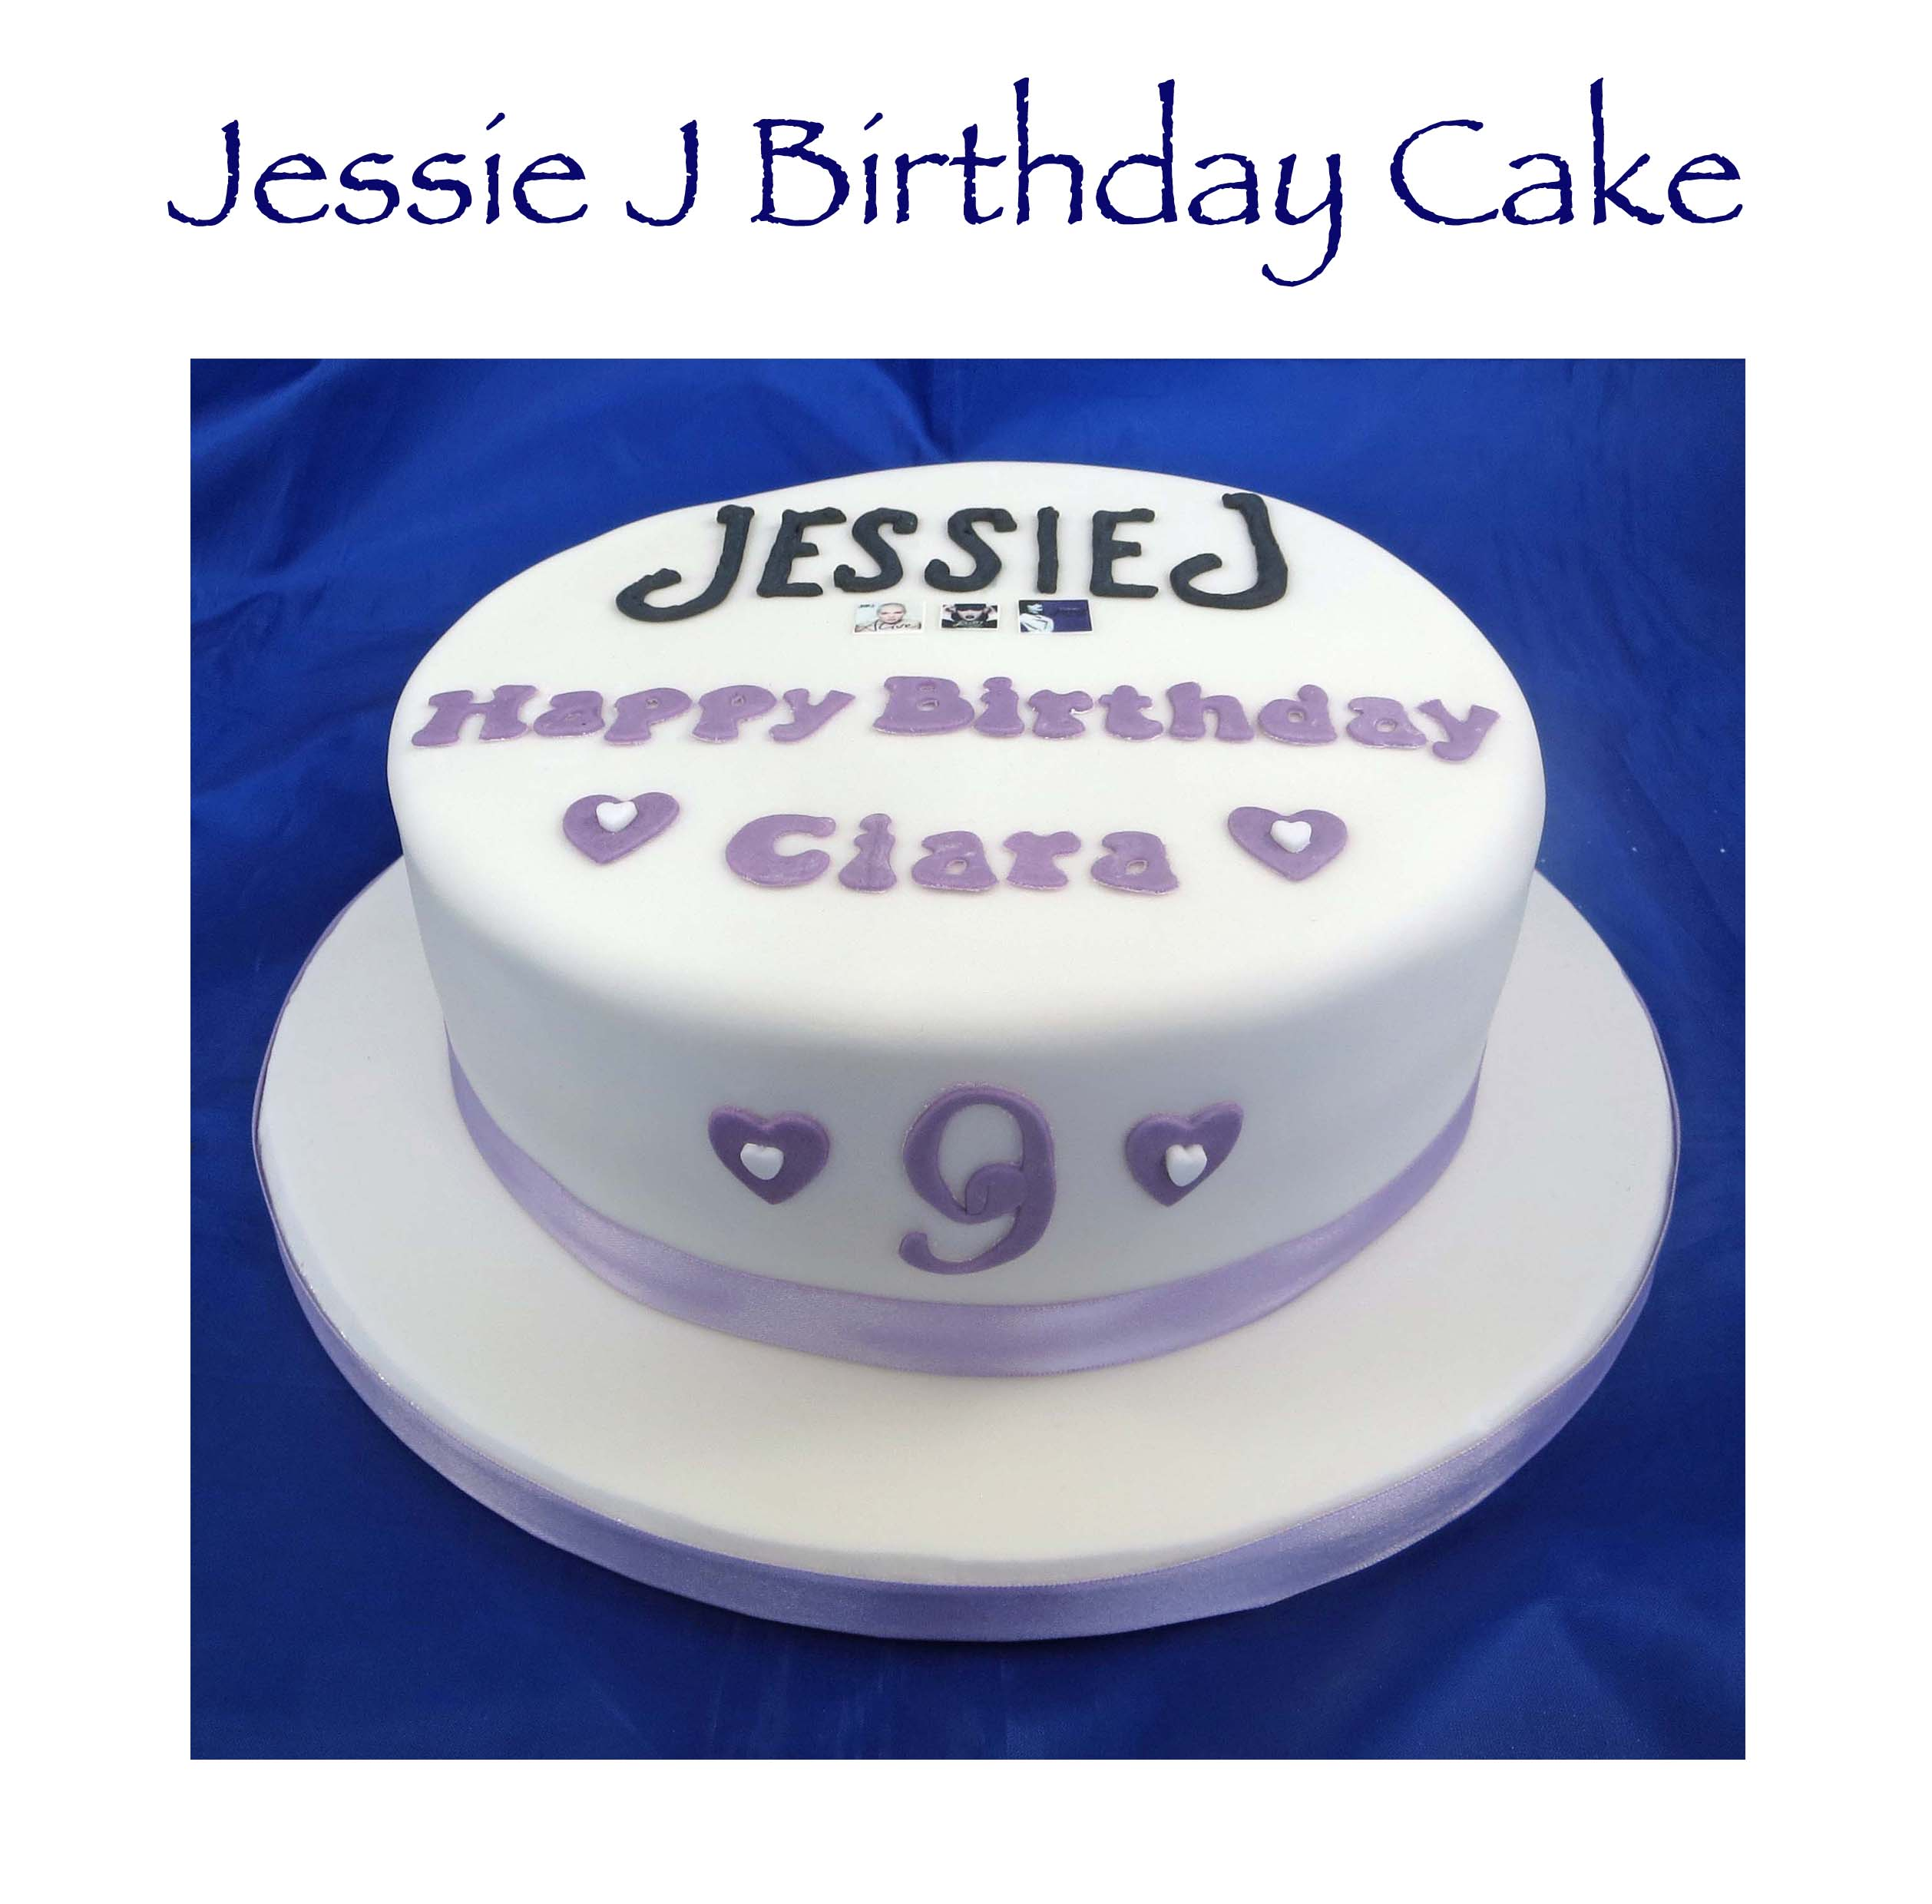 Jessie J Birthday Cake